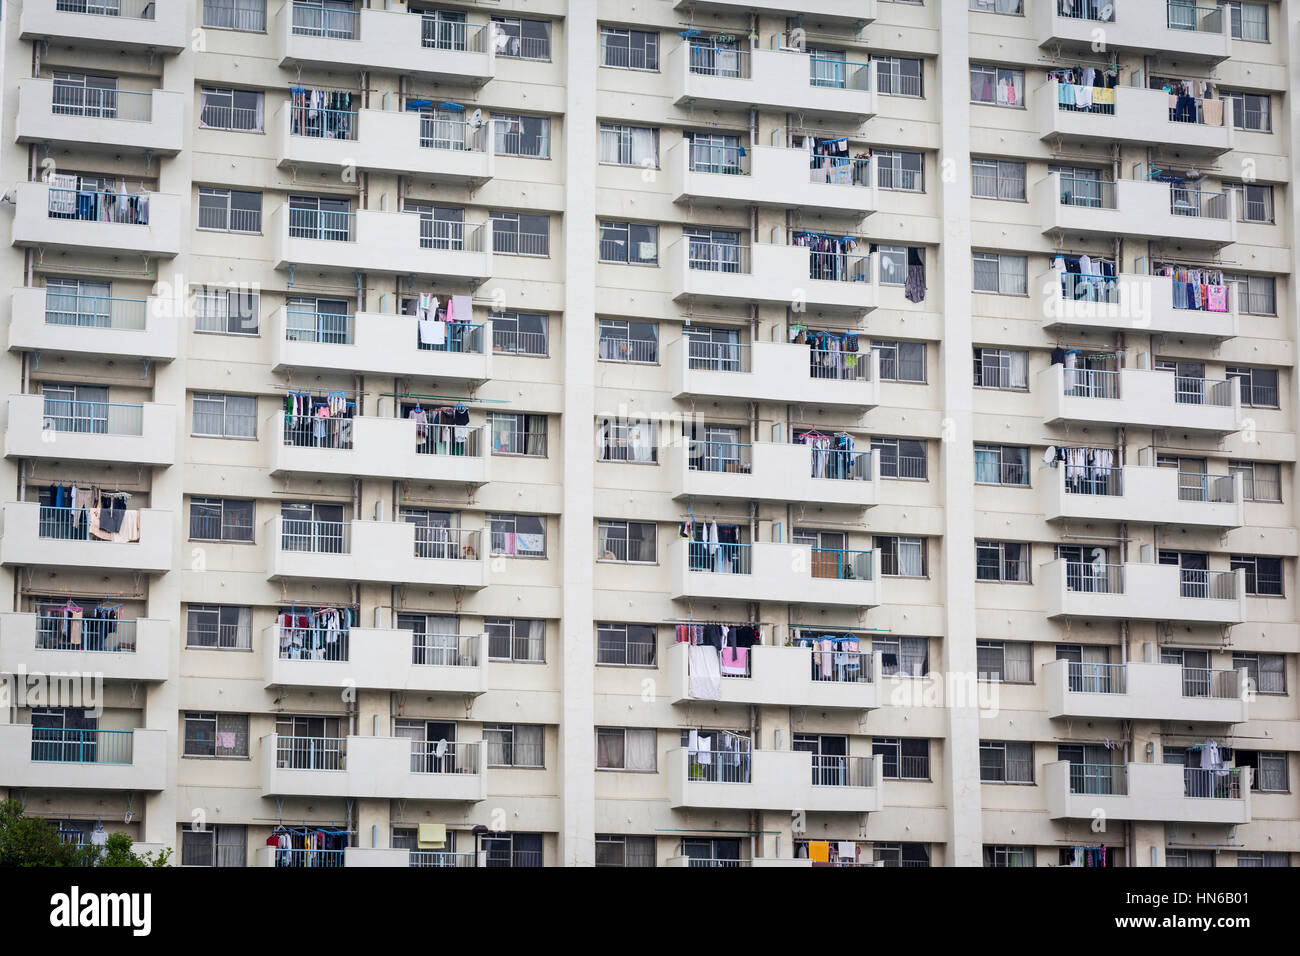 TOKYO- MAY 25: A basic, residential tower block in the Tsukiji district of Tokyo on 25th May 2012. The rows of windows - Stock Image